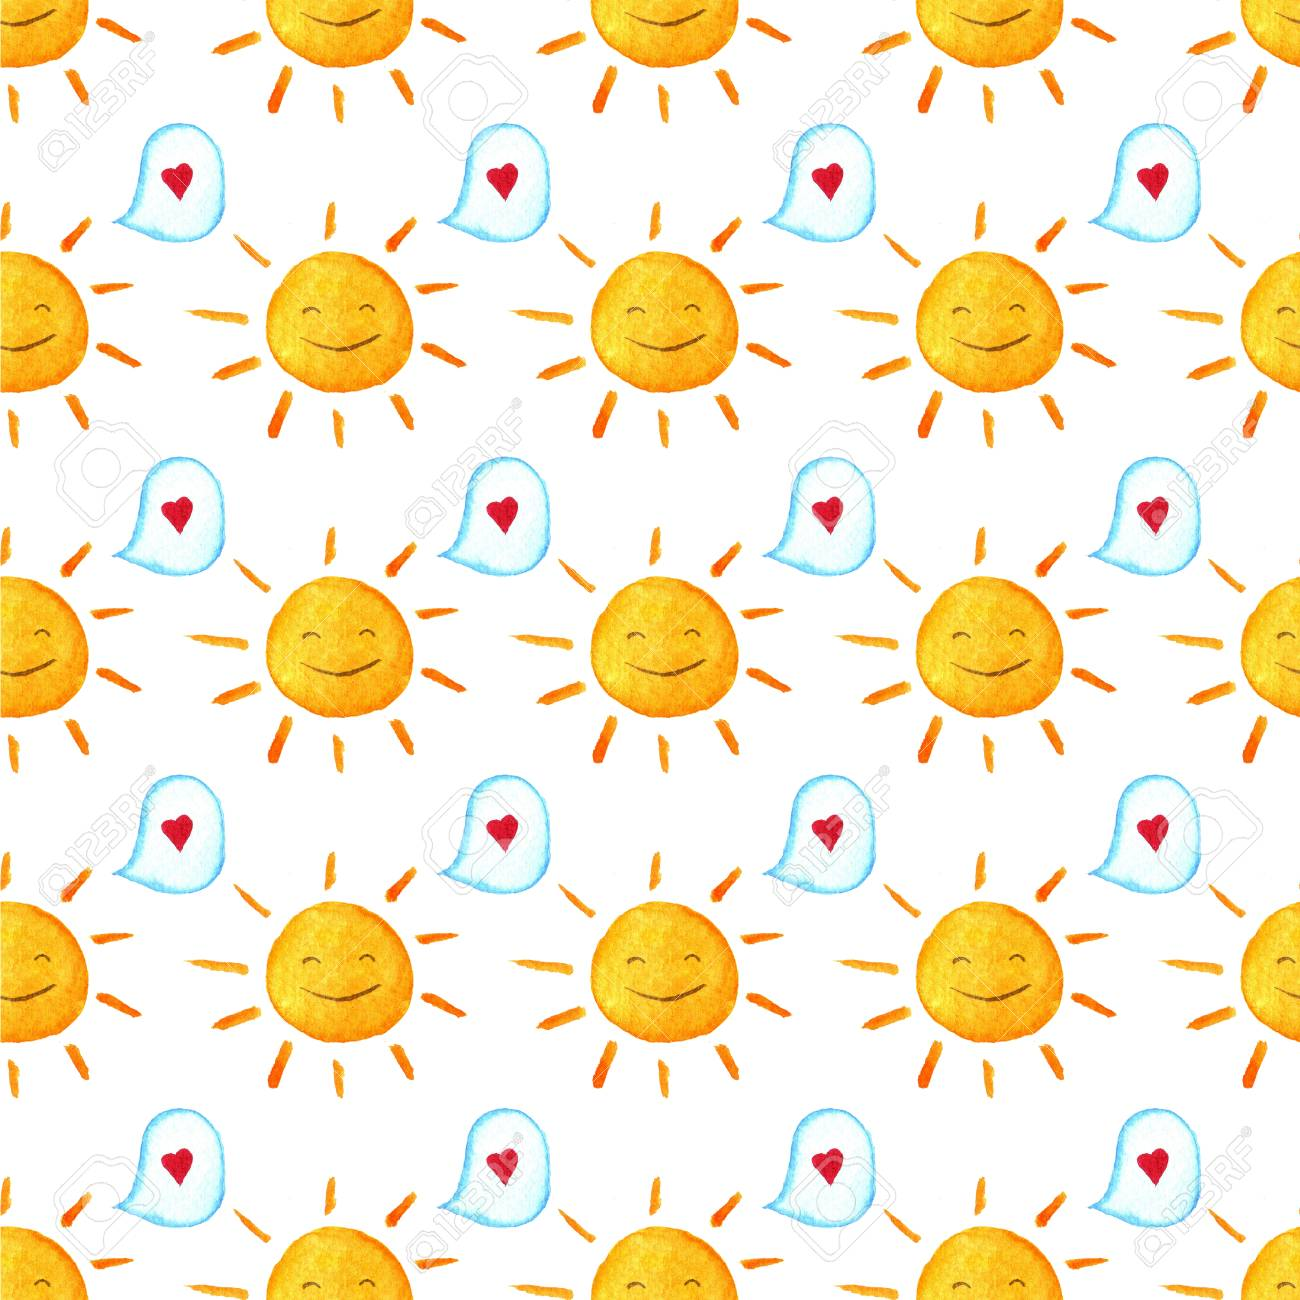 Seamless Baby Pattern Hand Painted Illustration Wallpaper